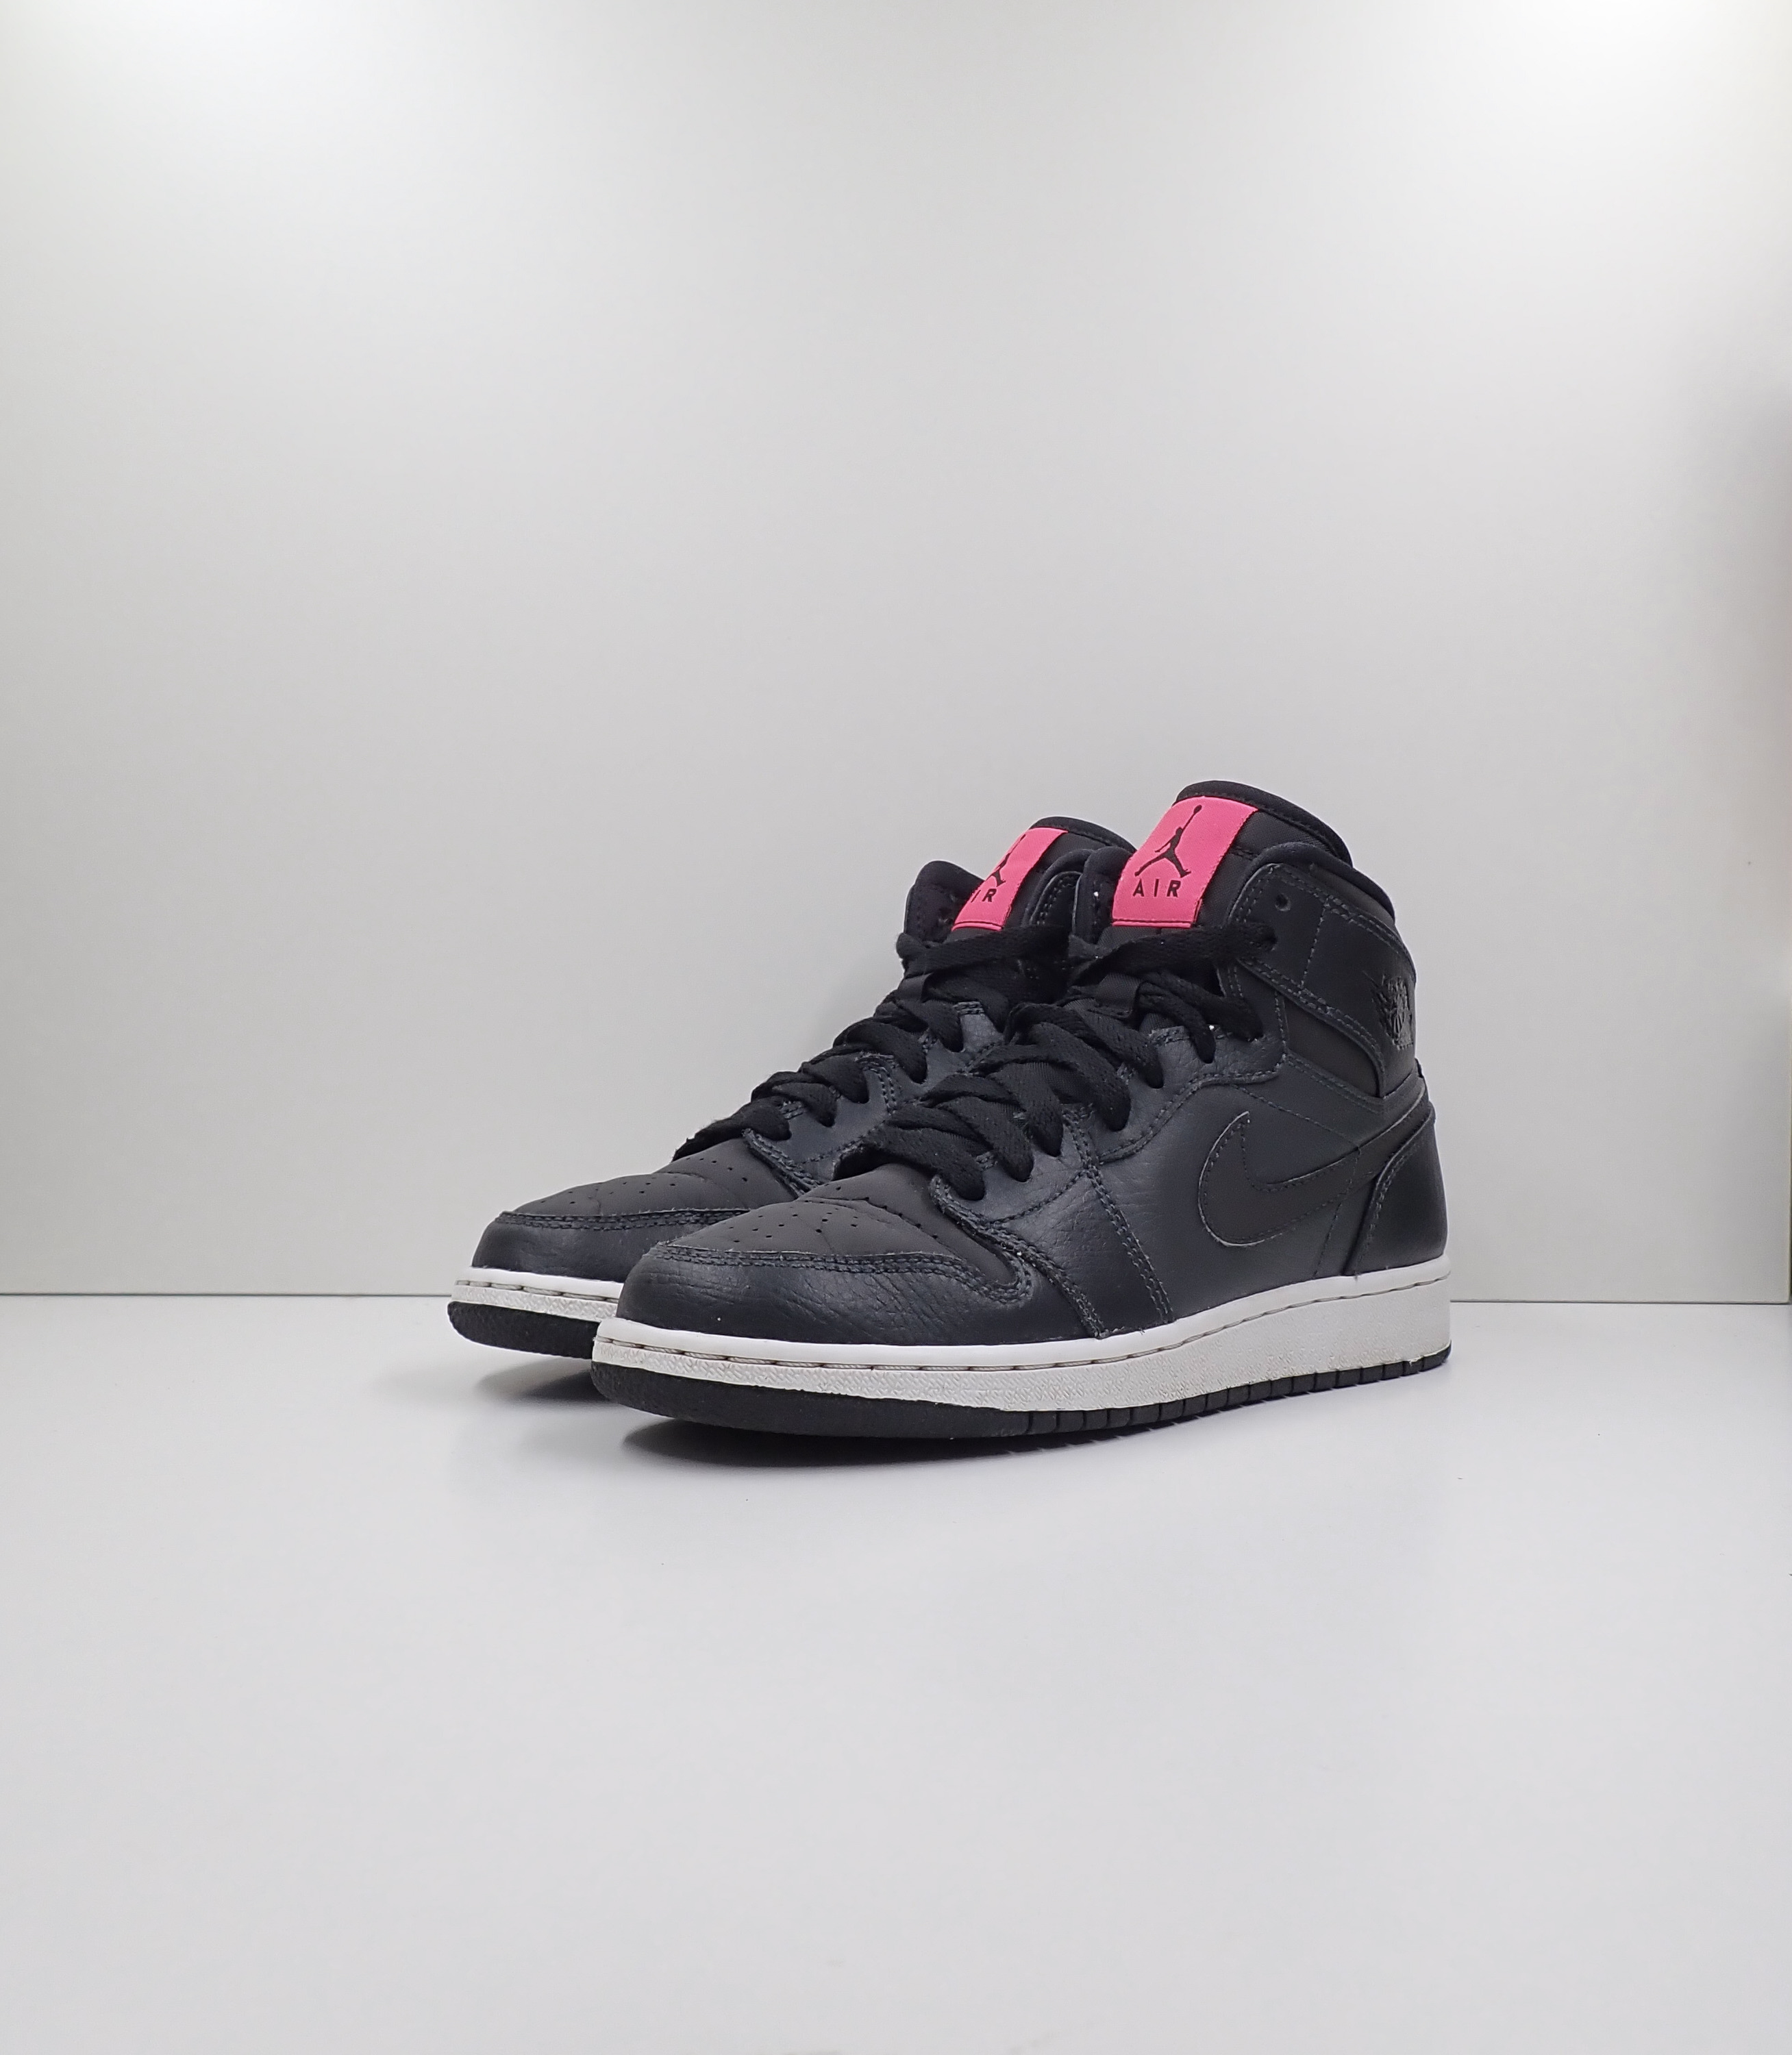 Jordan 1 Retro High Anthracite (GS)